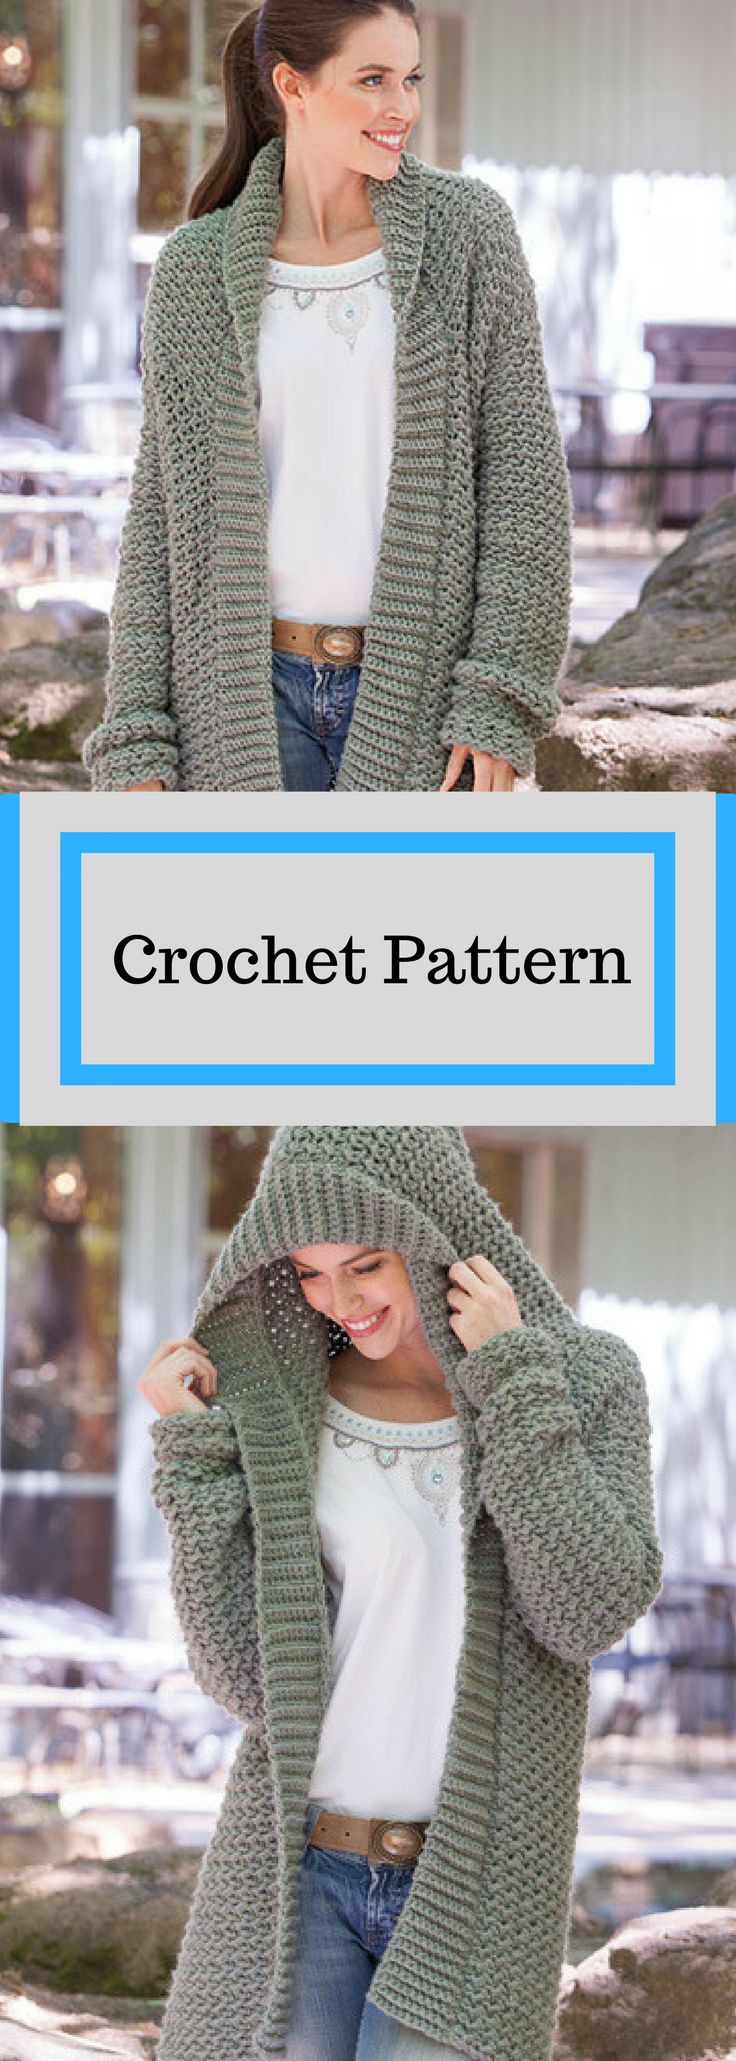 Weekend Casual Hooded Sweater Crochet Pattern Available for Electronic Download #ad